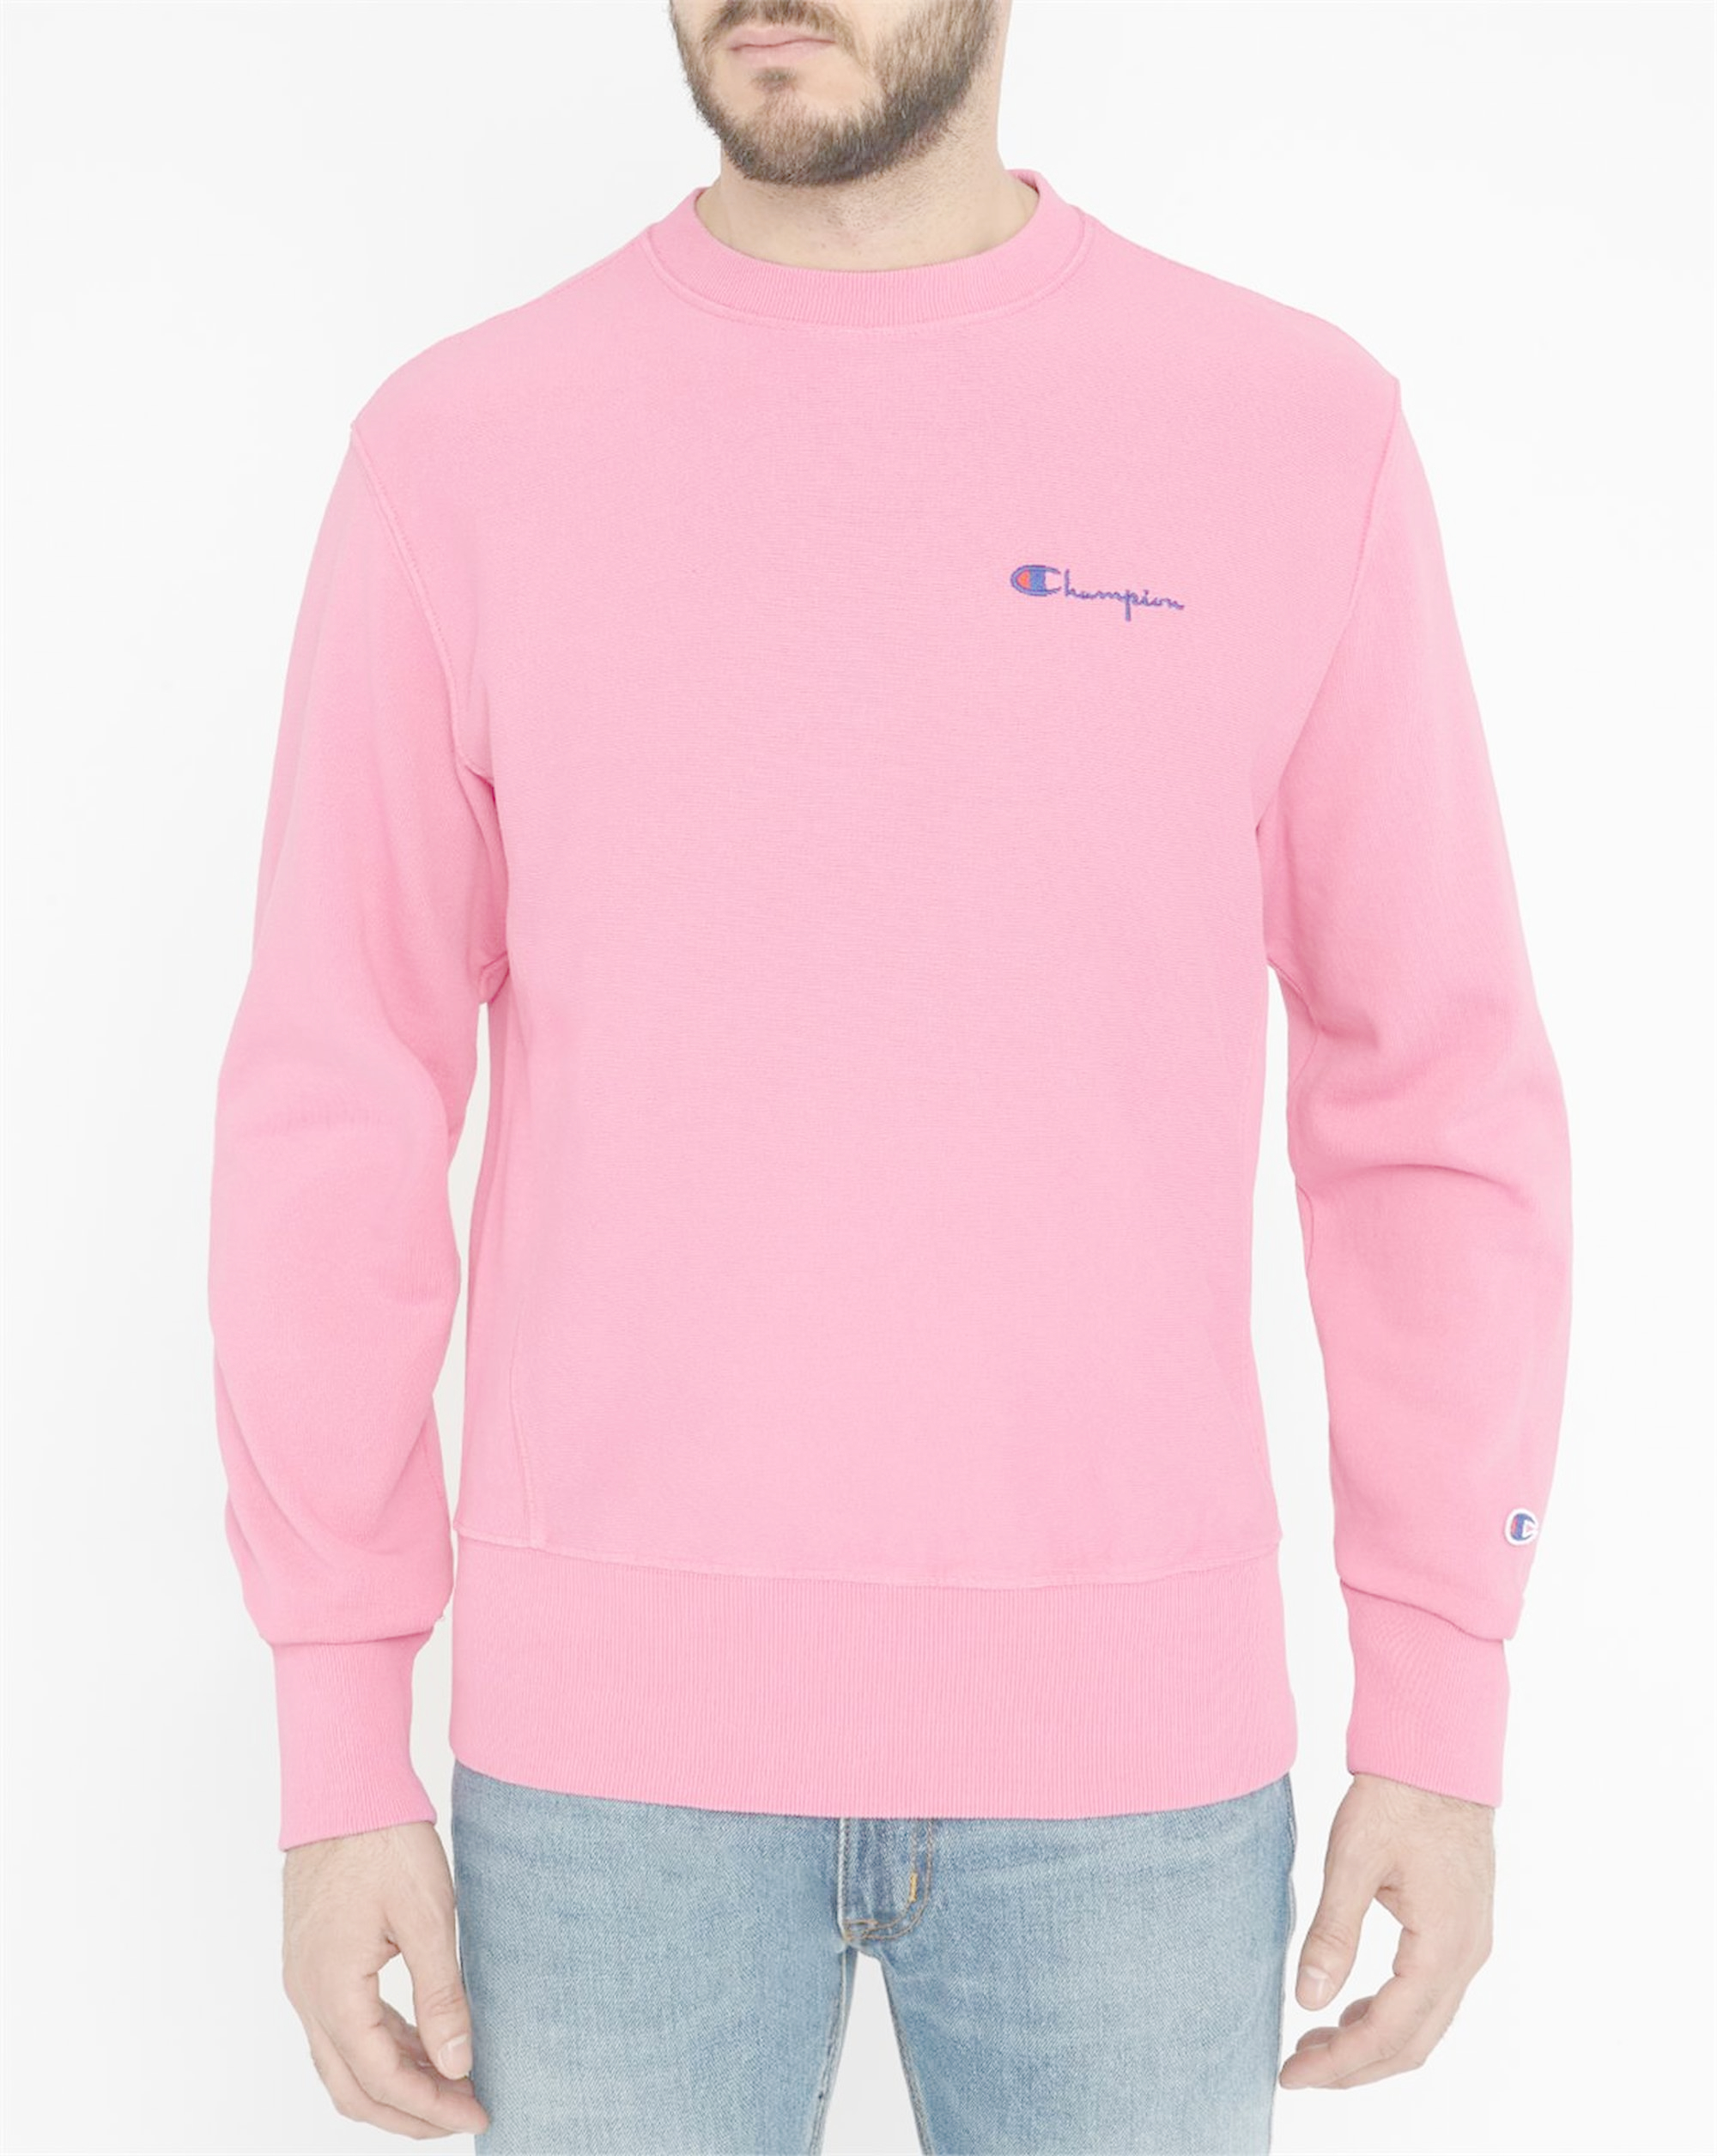 Champion Pink Sweatshirt | Fashion Ql